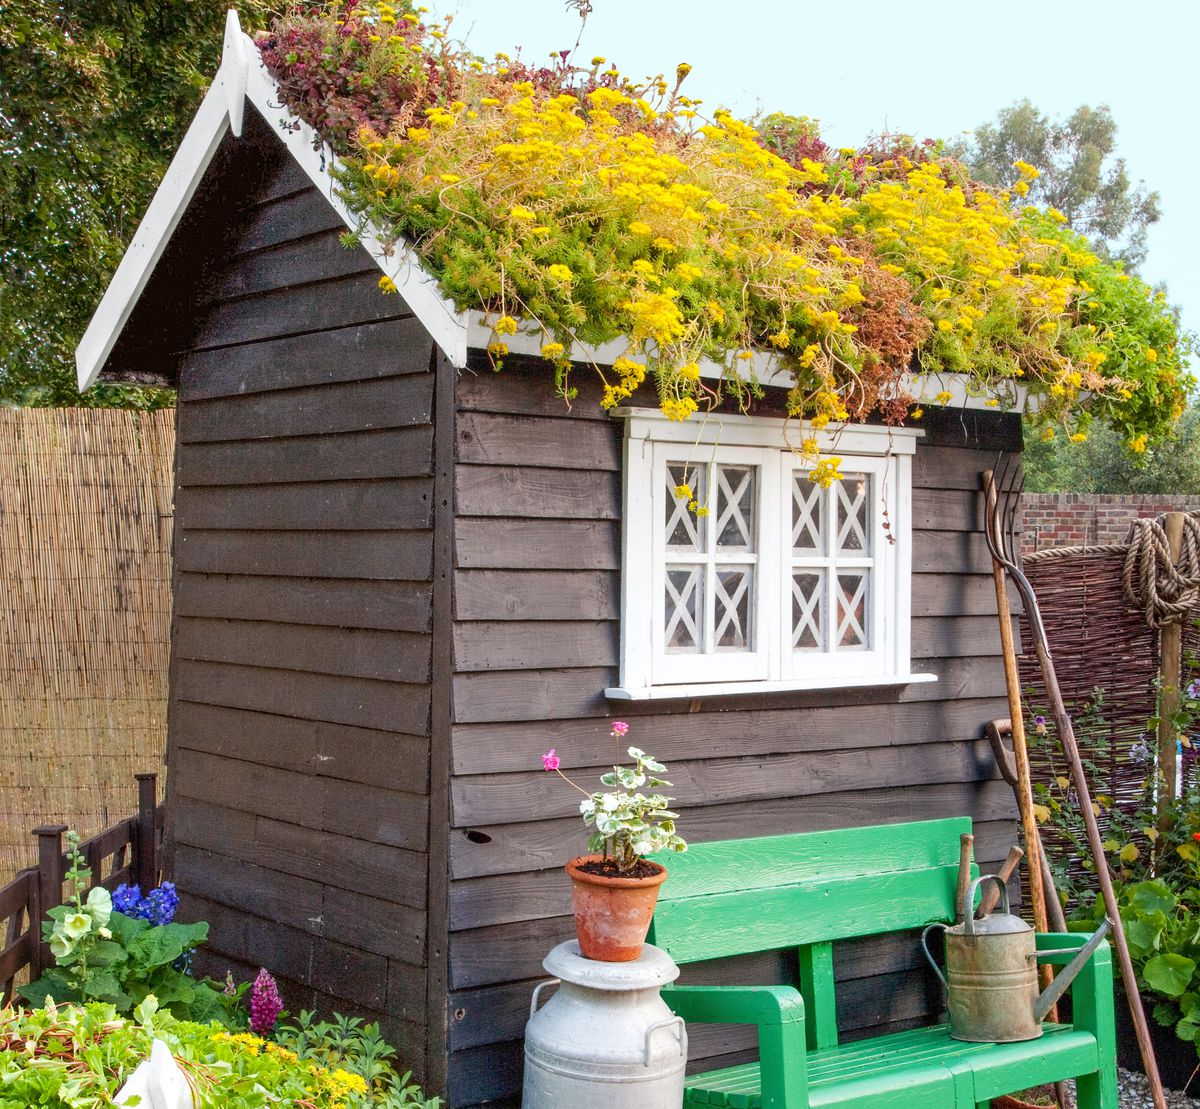 Green Roofed Garden Shed